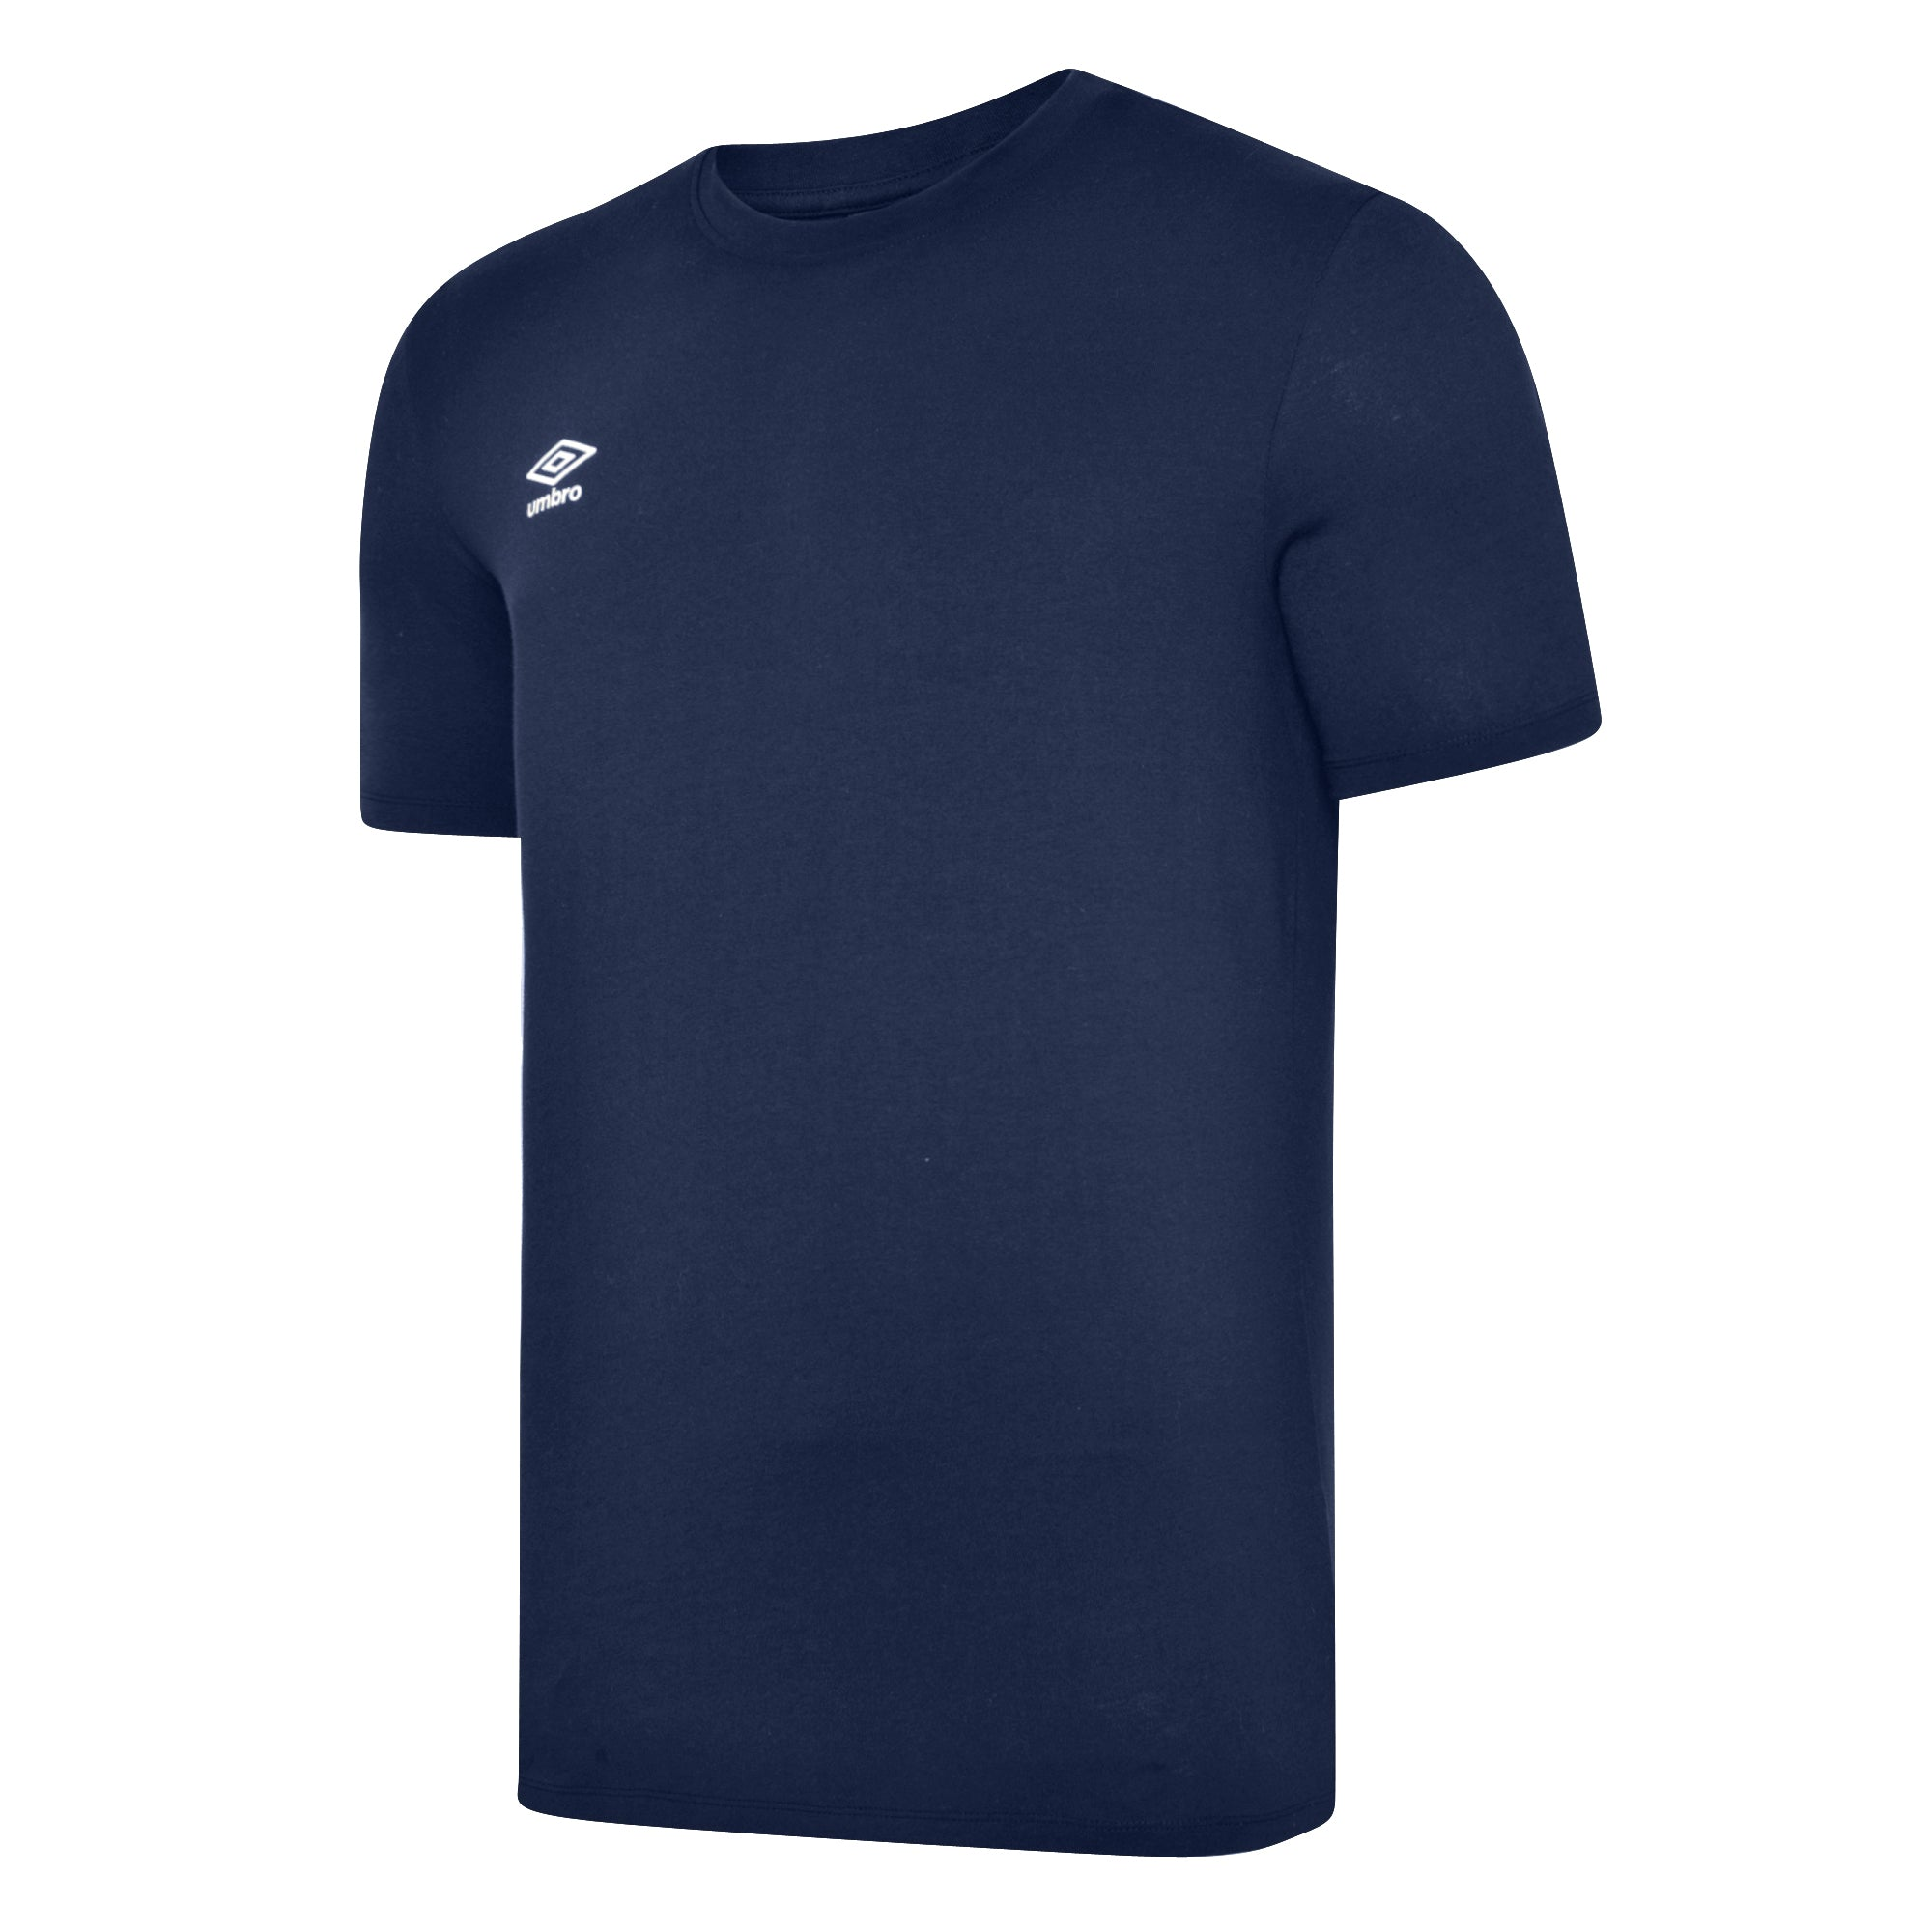 Umbro Club Leisure Crew Tee - TW Navy/White